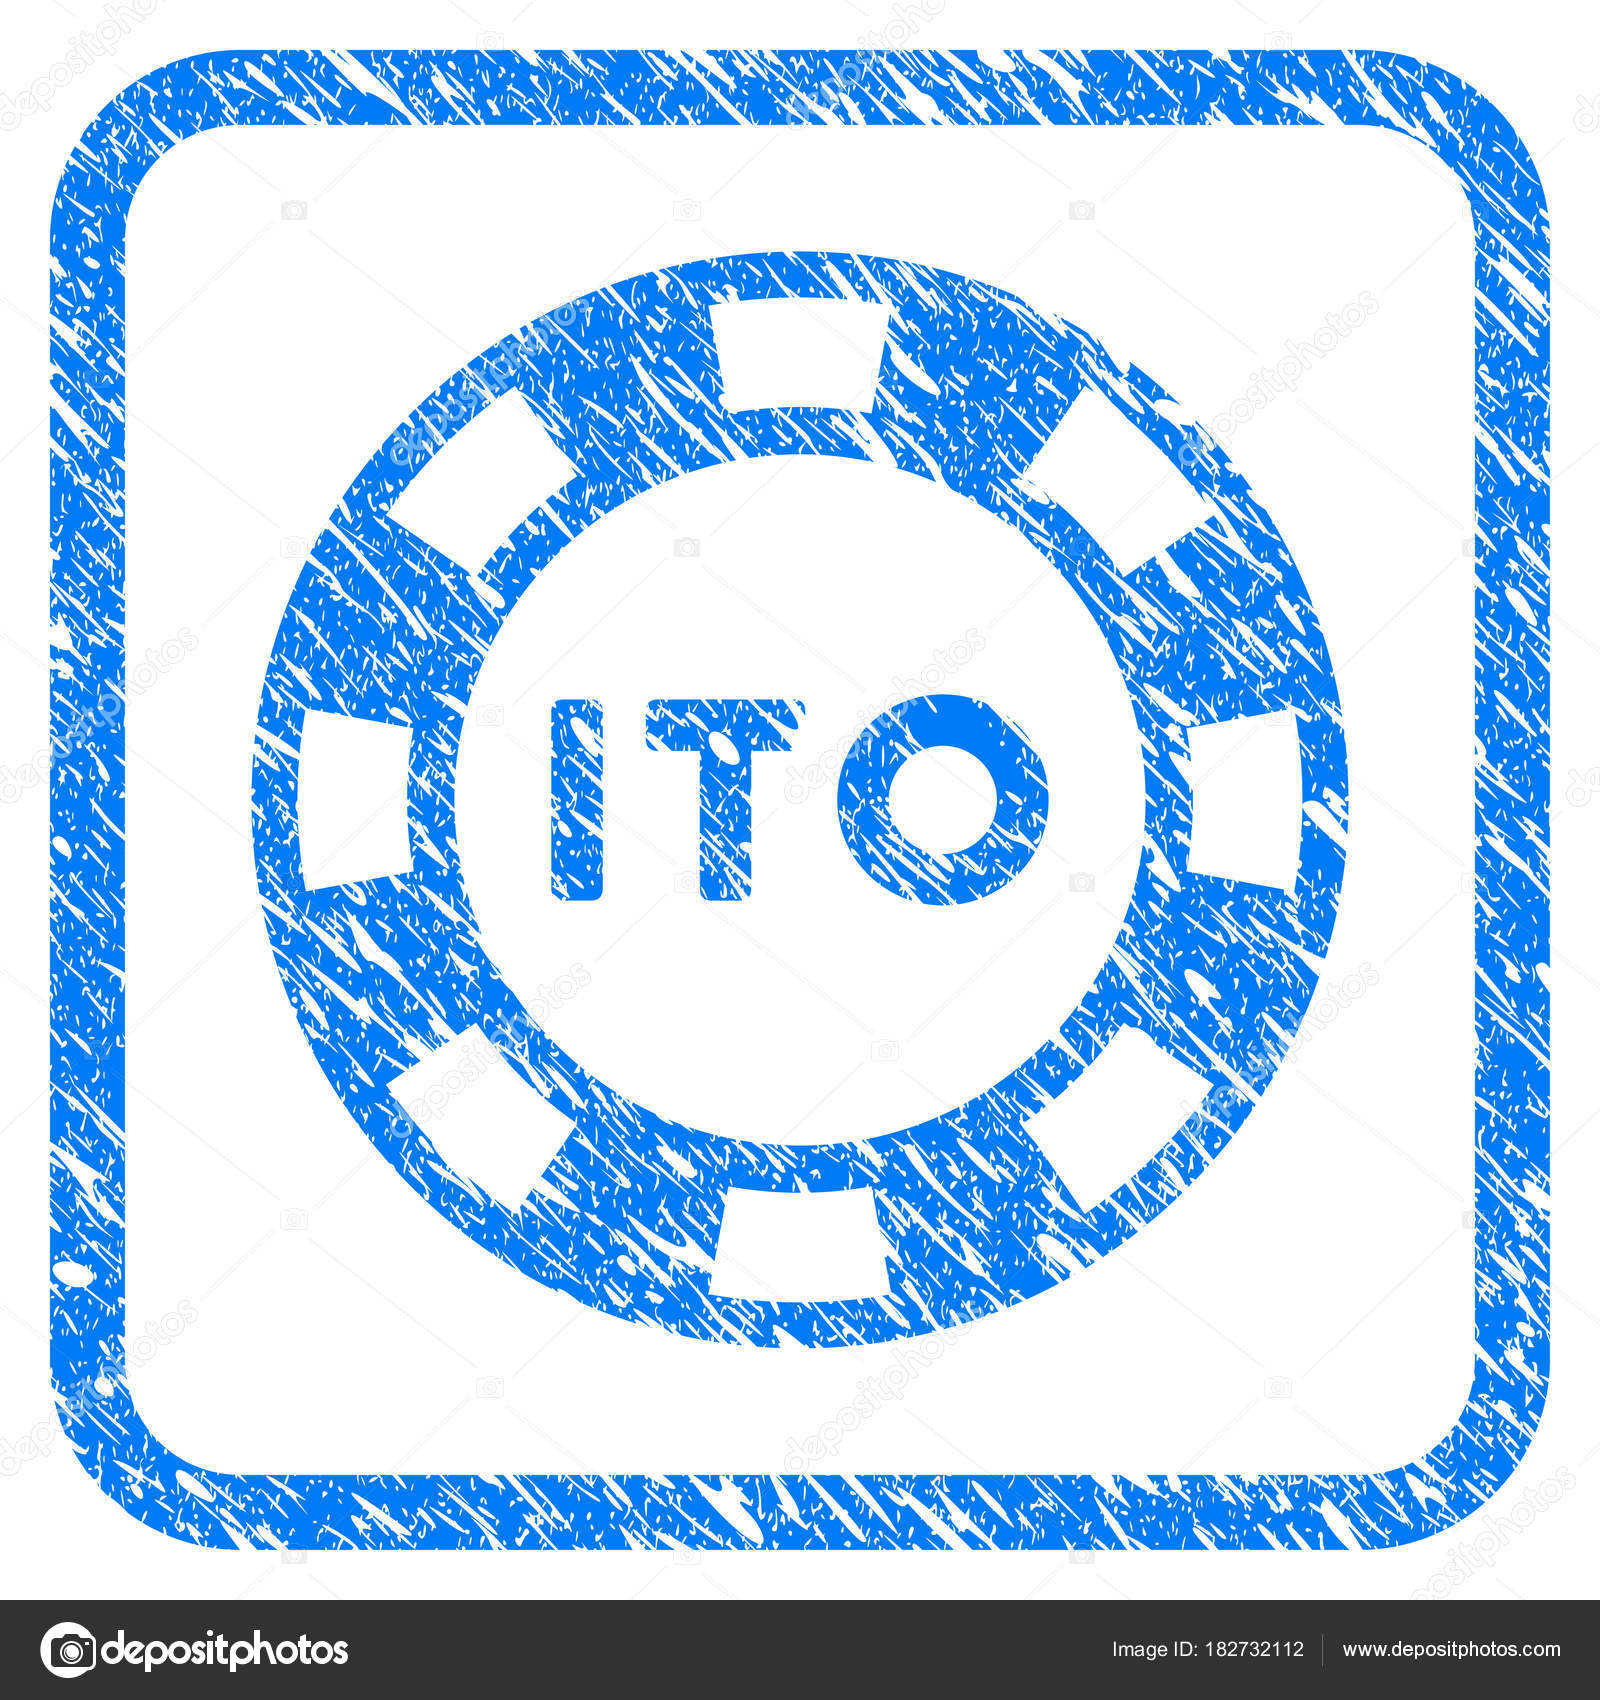 ito token framed grunge icon stock vector ahasoft 182732112